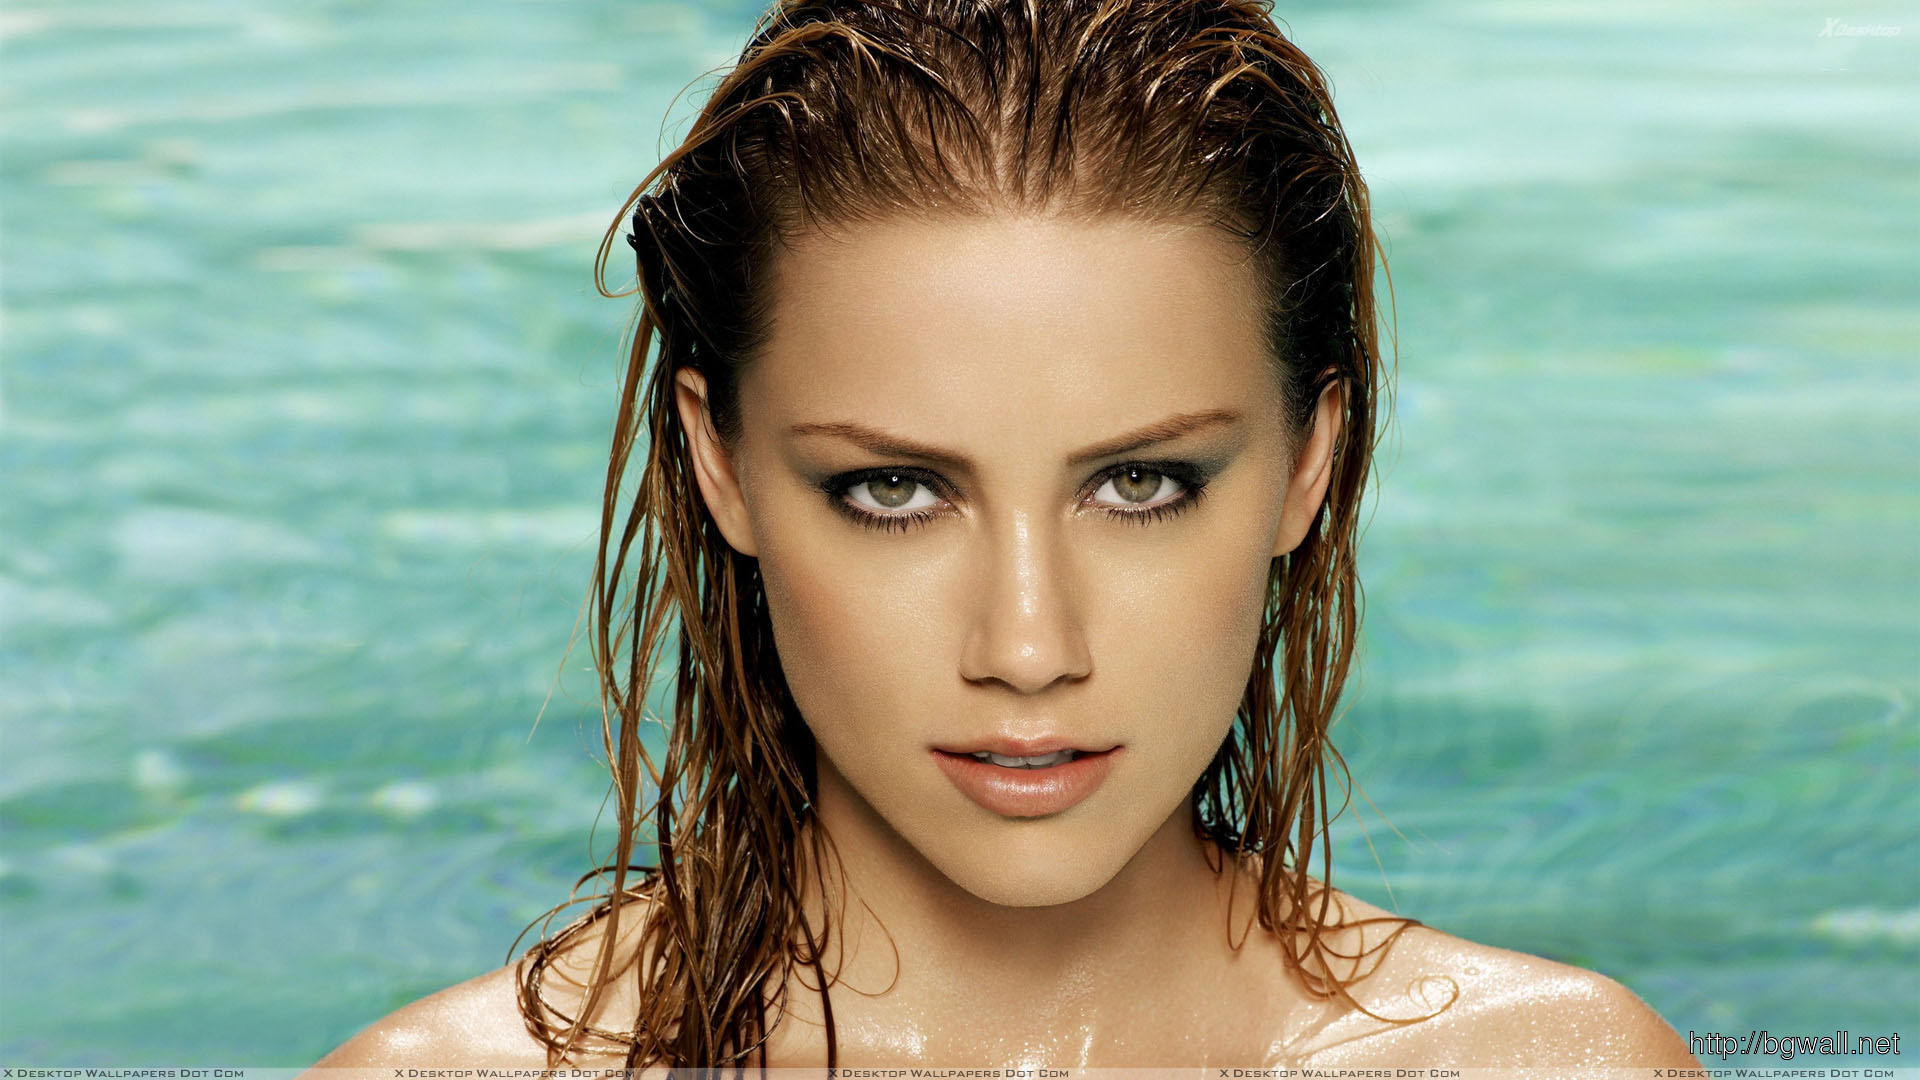 Amber Heard Wet Body And Looking Front Wallpaper Full Size